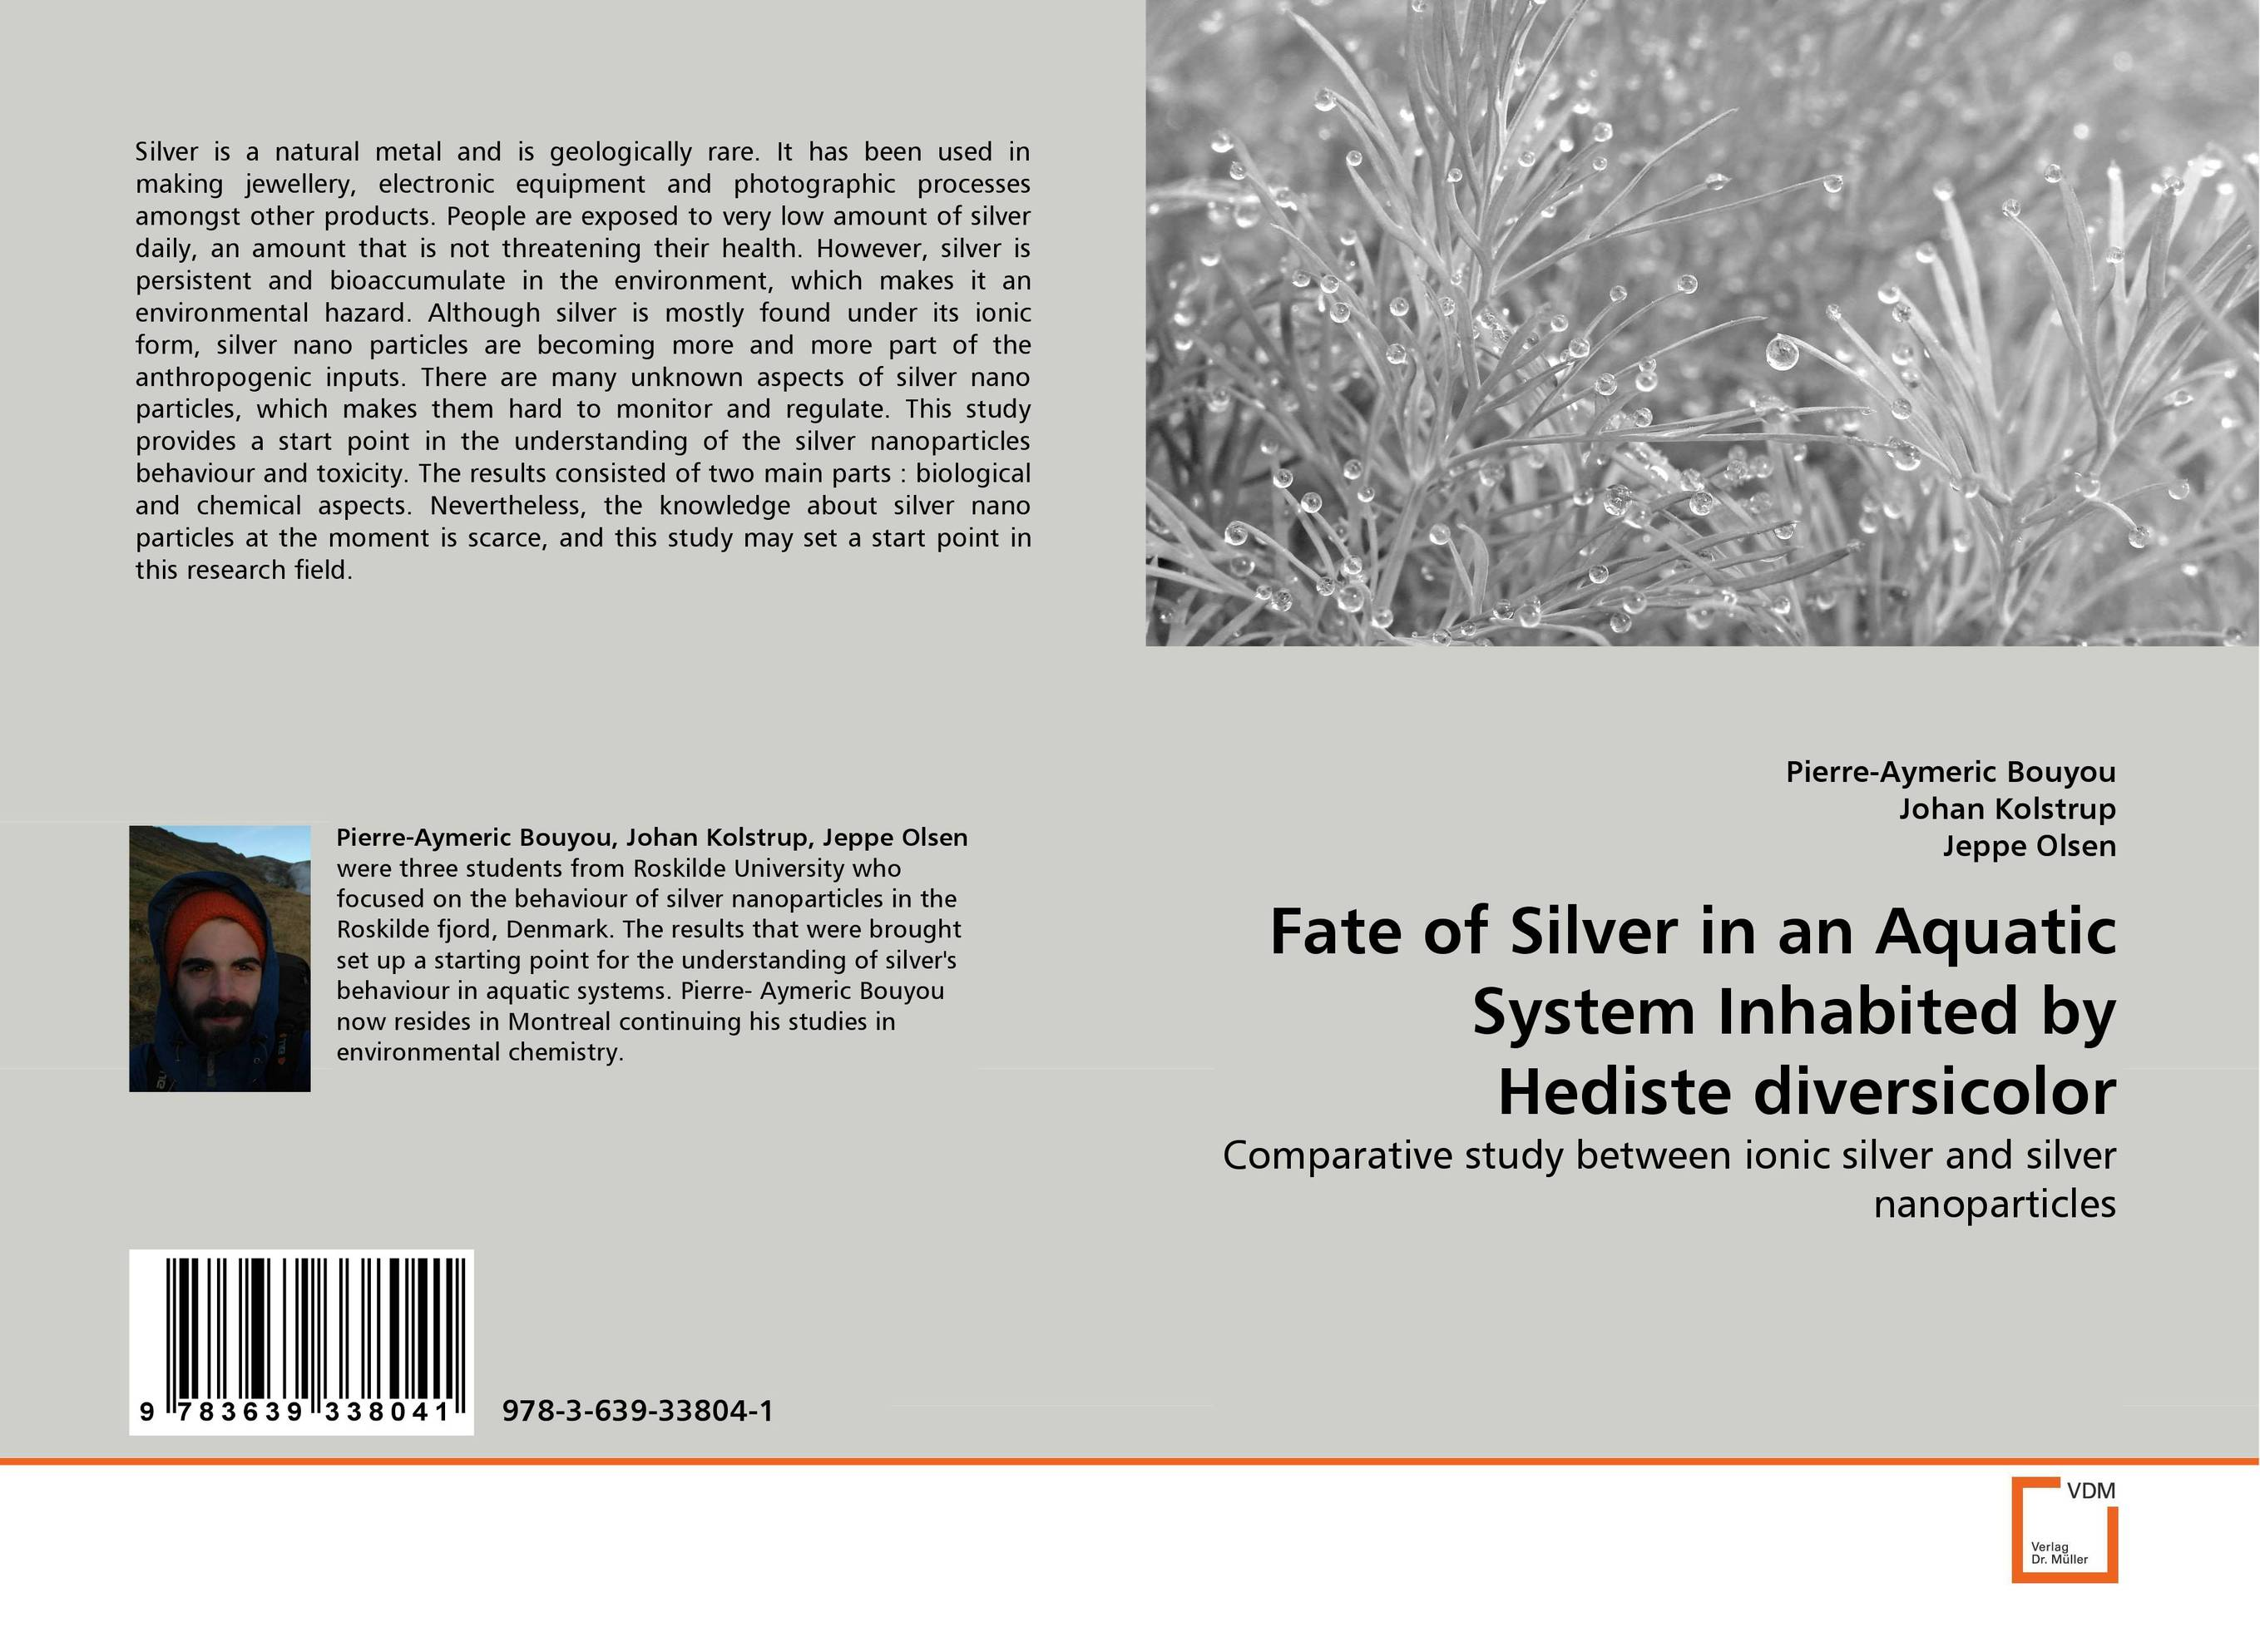 Fate of Silver in an Aquatic System Inhabited by Hediste diversicolor the silver chair